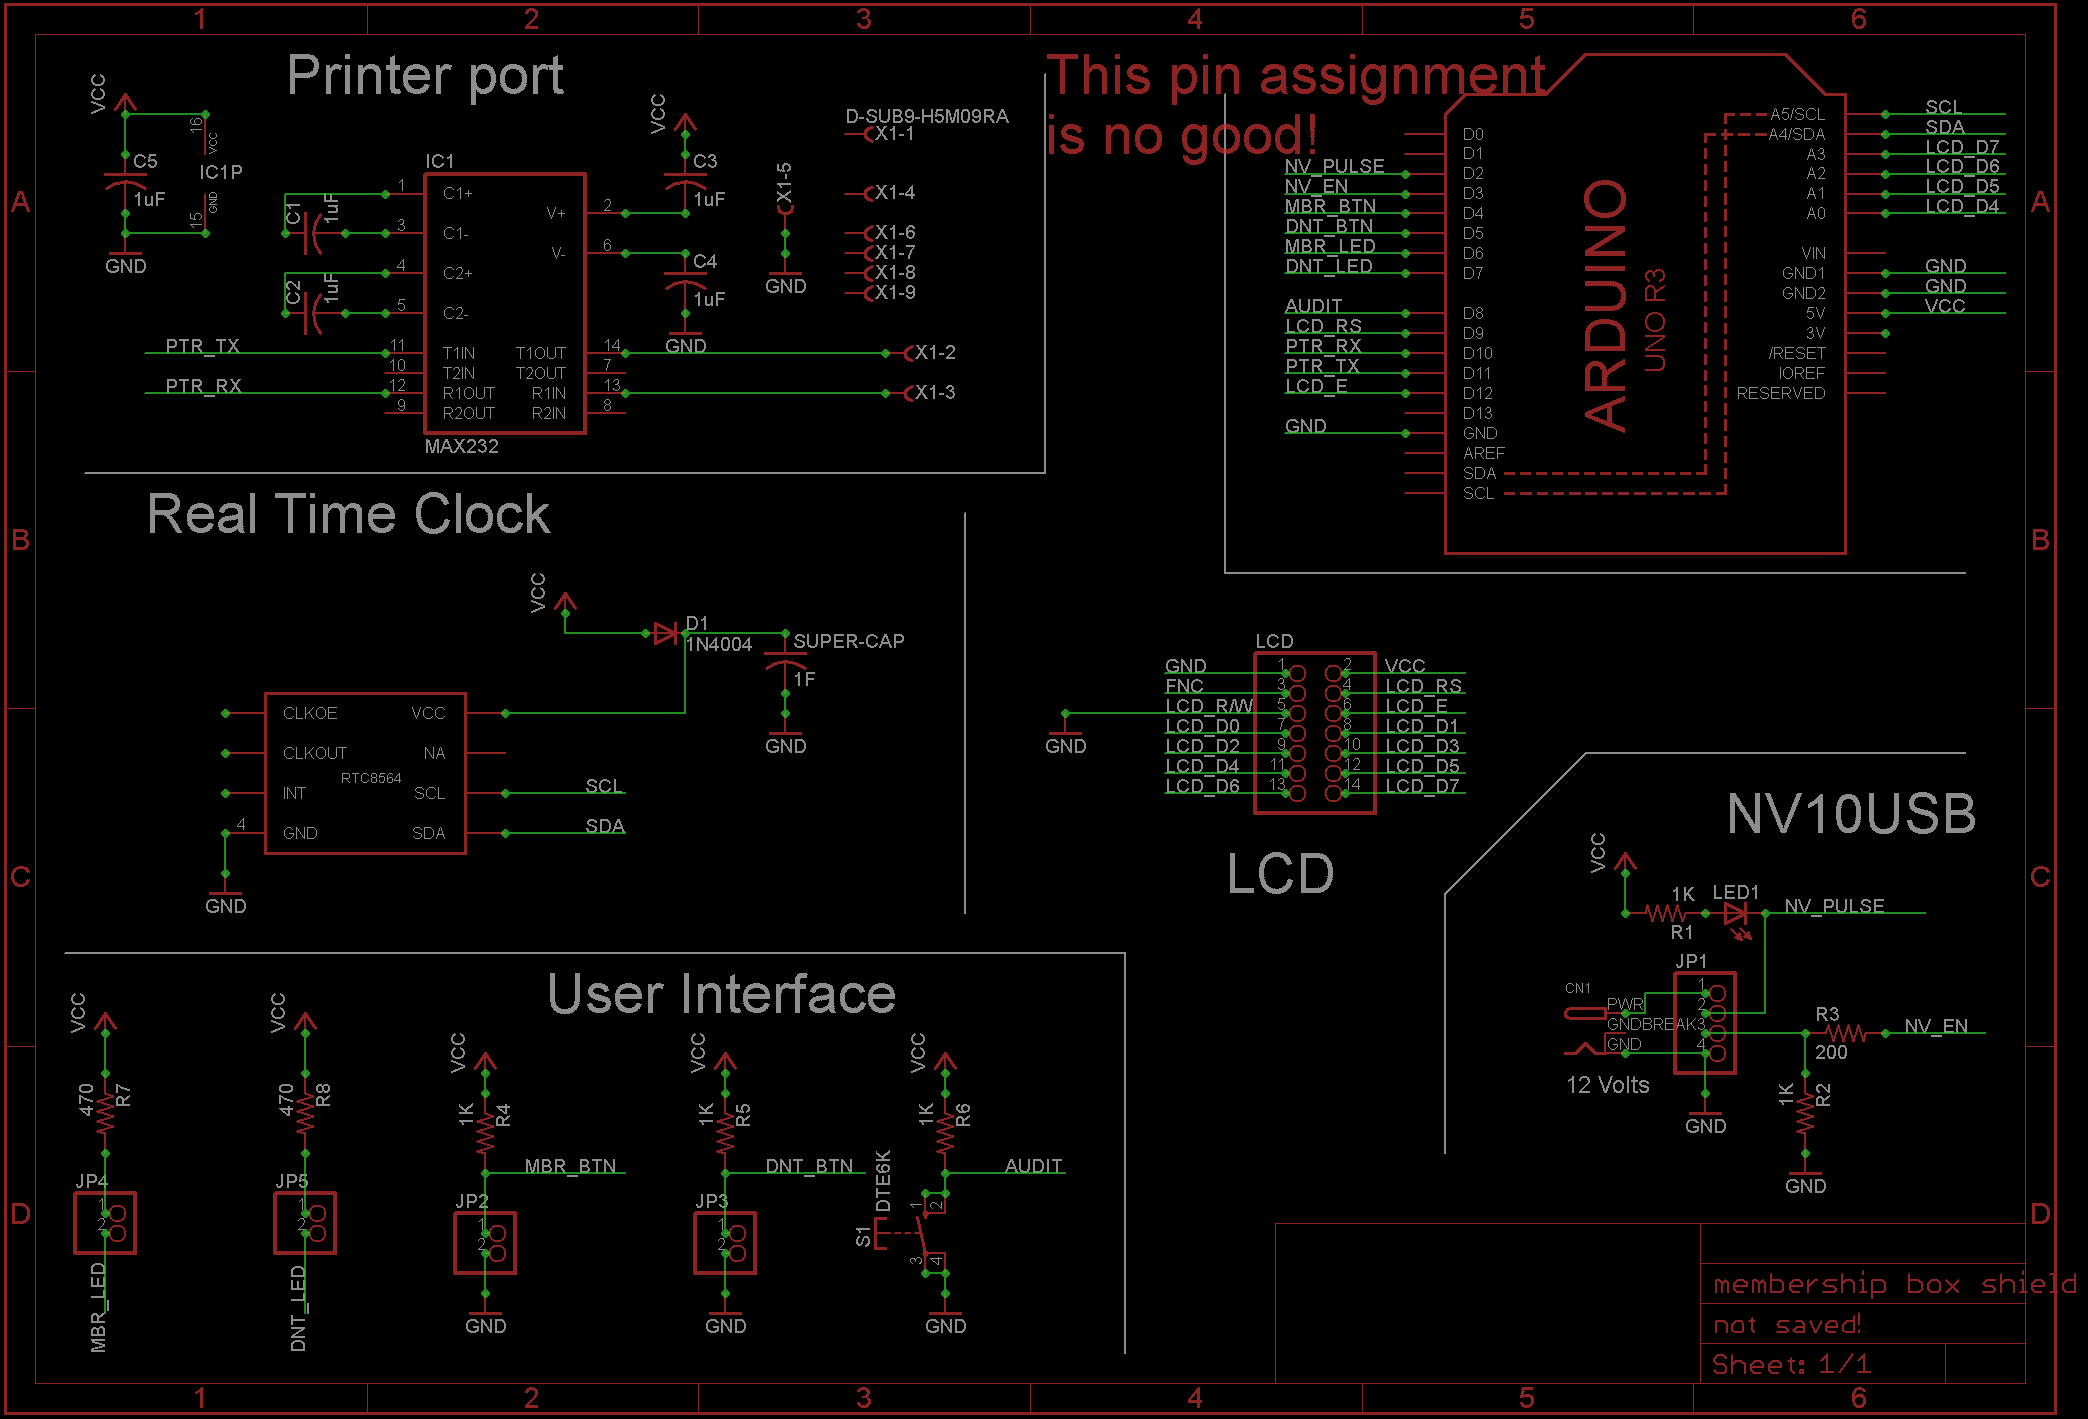 How Not To Layout A Pcb Arduino Real Time Clock Shield Schematic In My Last Post About The Bill Acceptor Project That I Had Made Preliminary Pin Count And Started Assigning Functions Various Pins